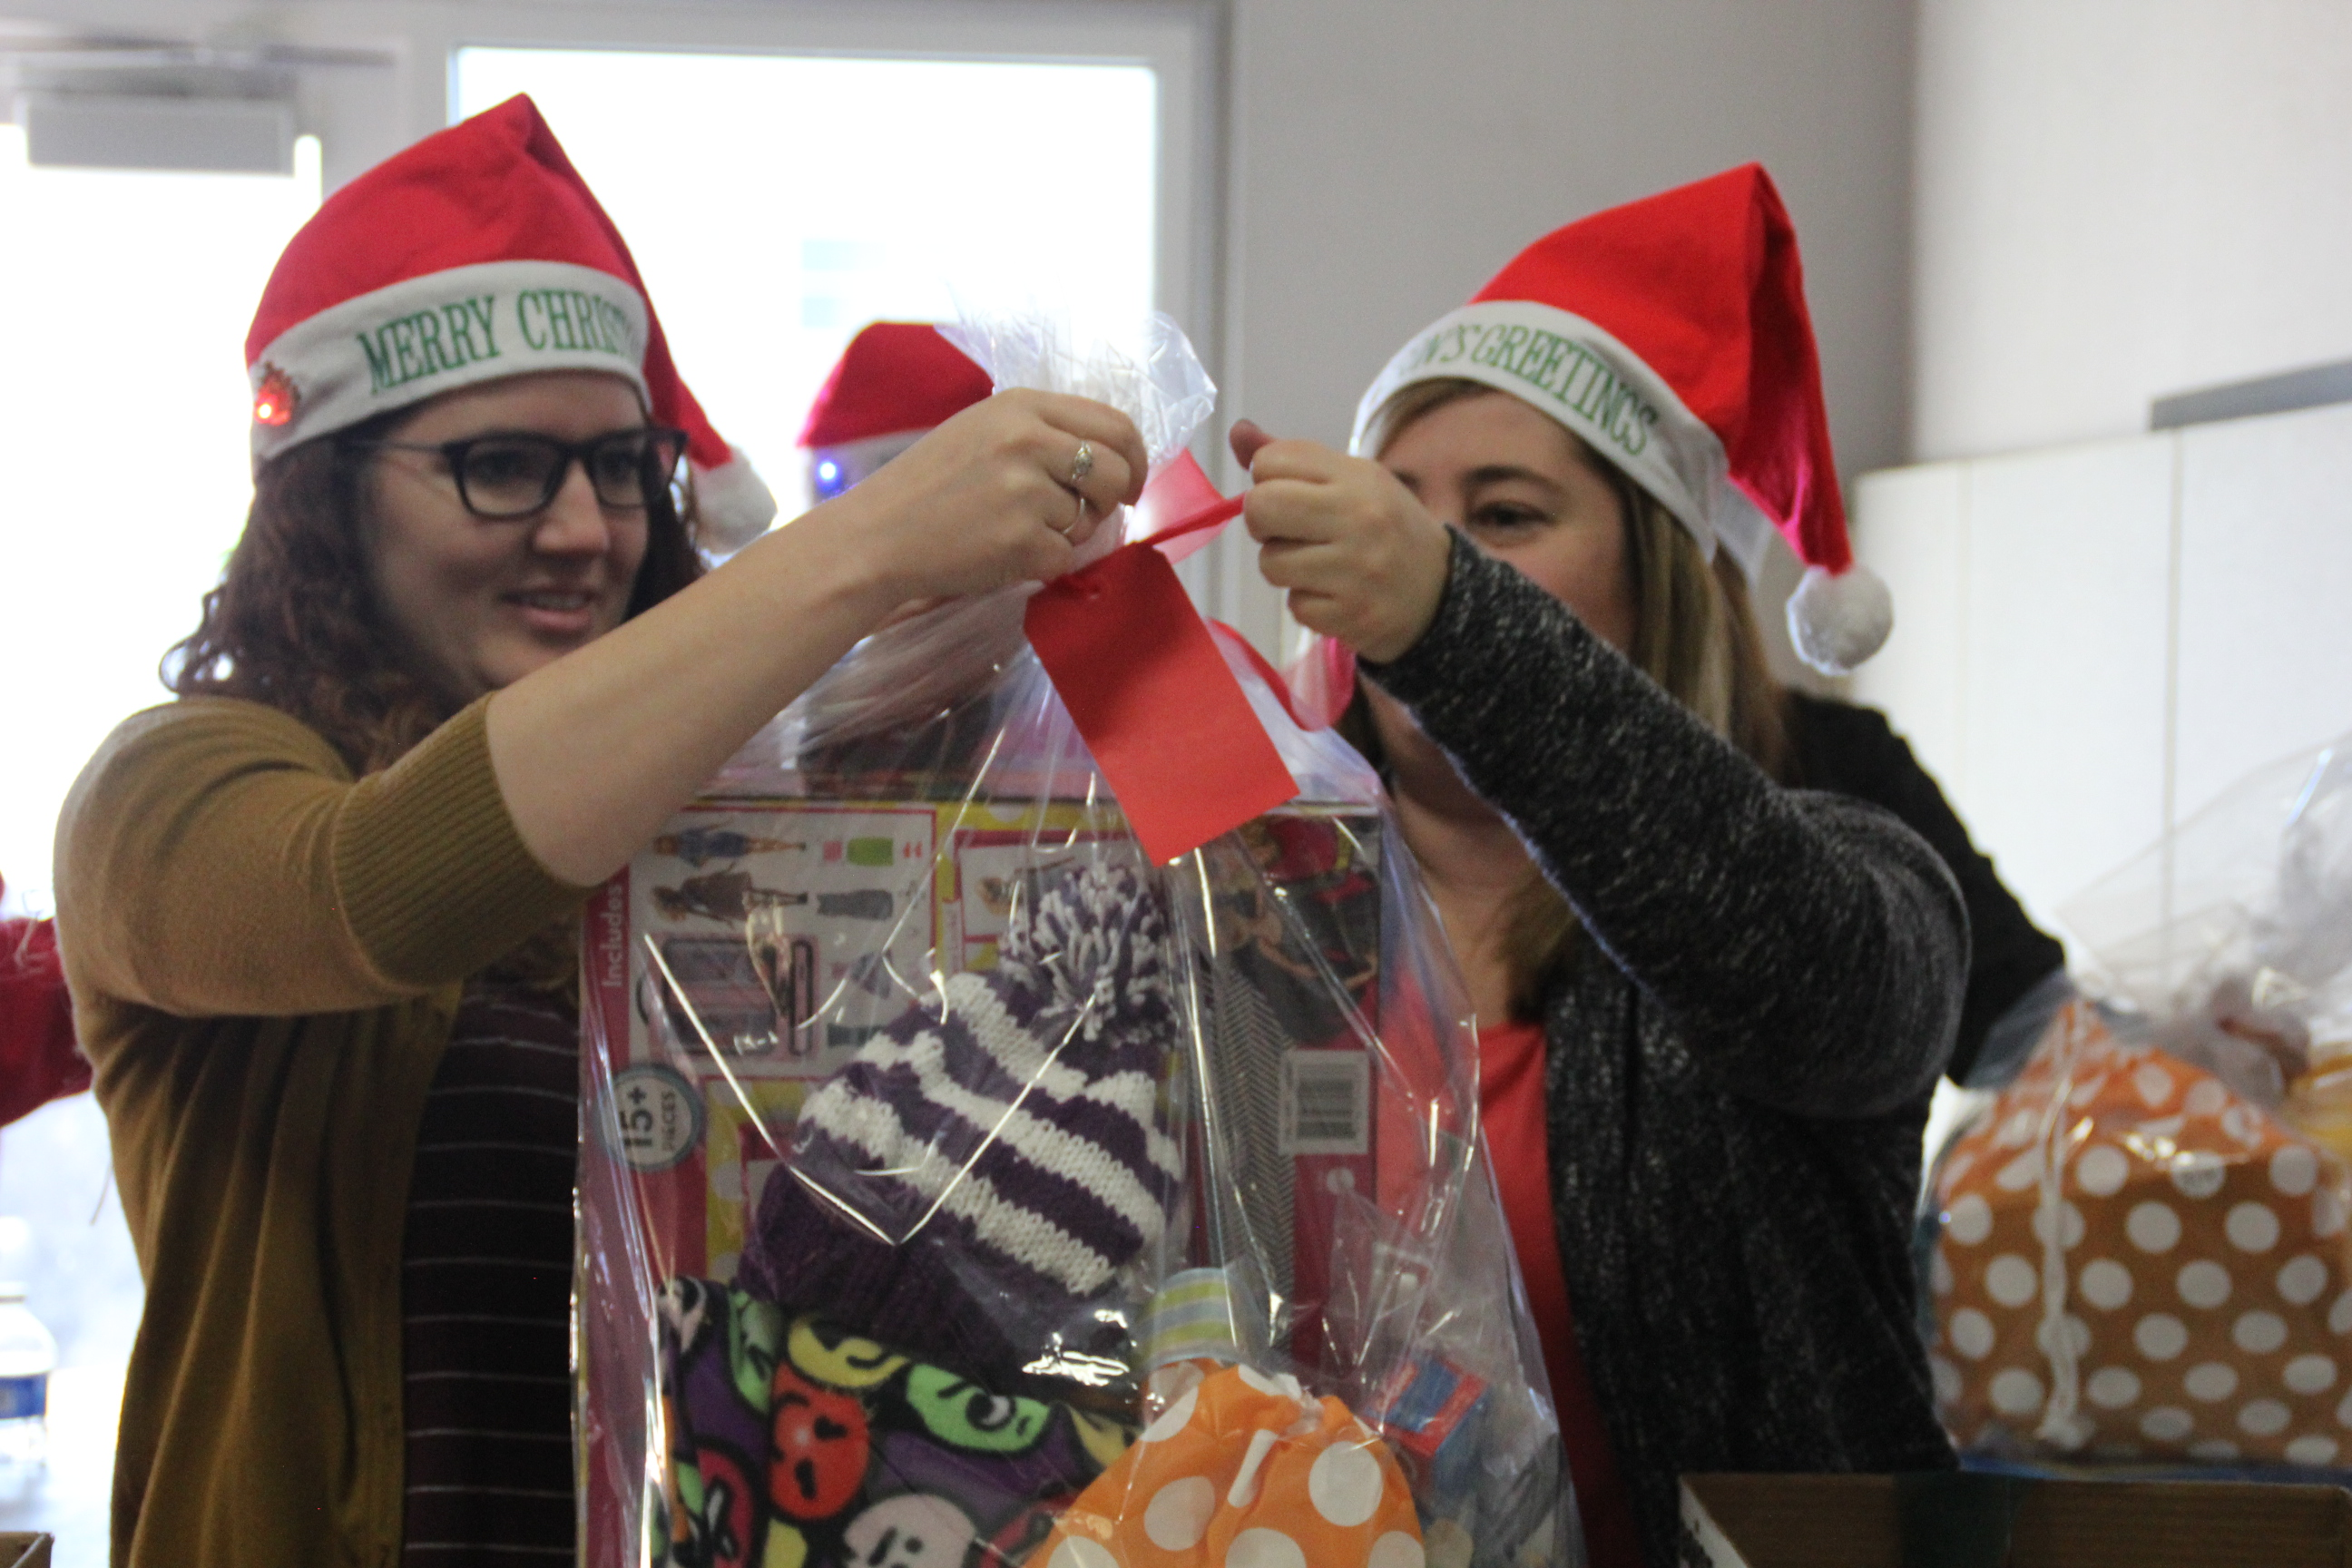 Press Release: Holiday Gifts Go to Thousands of Needy Students